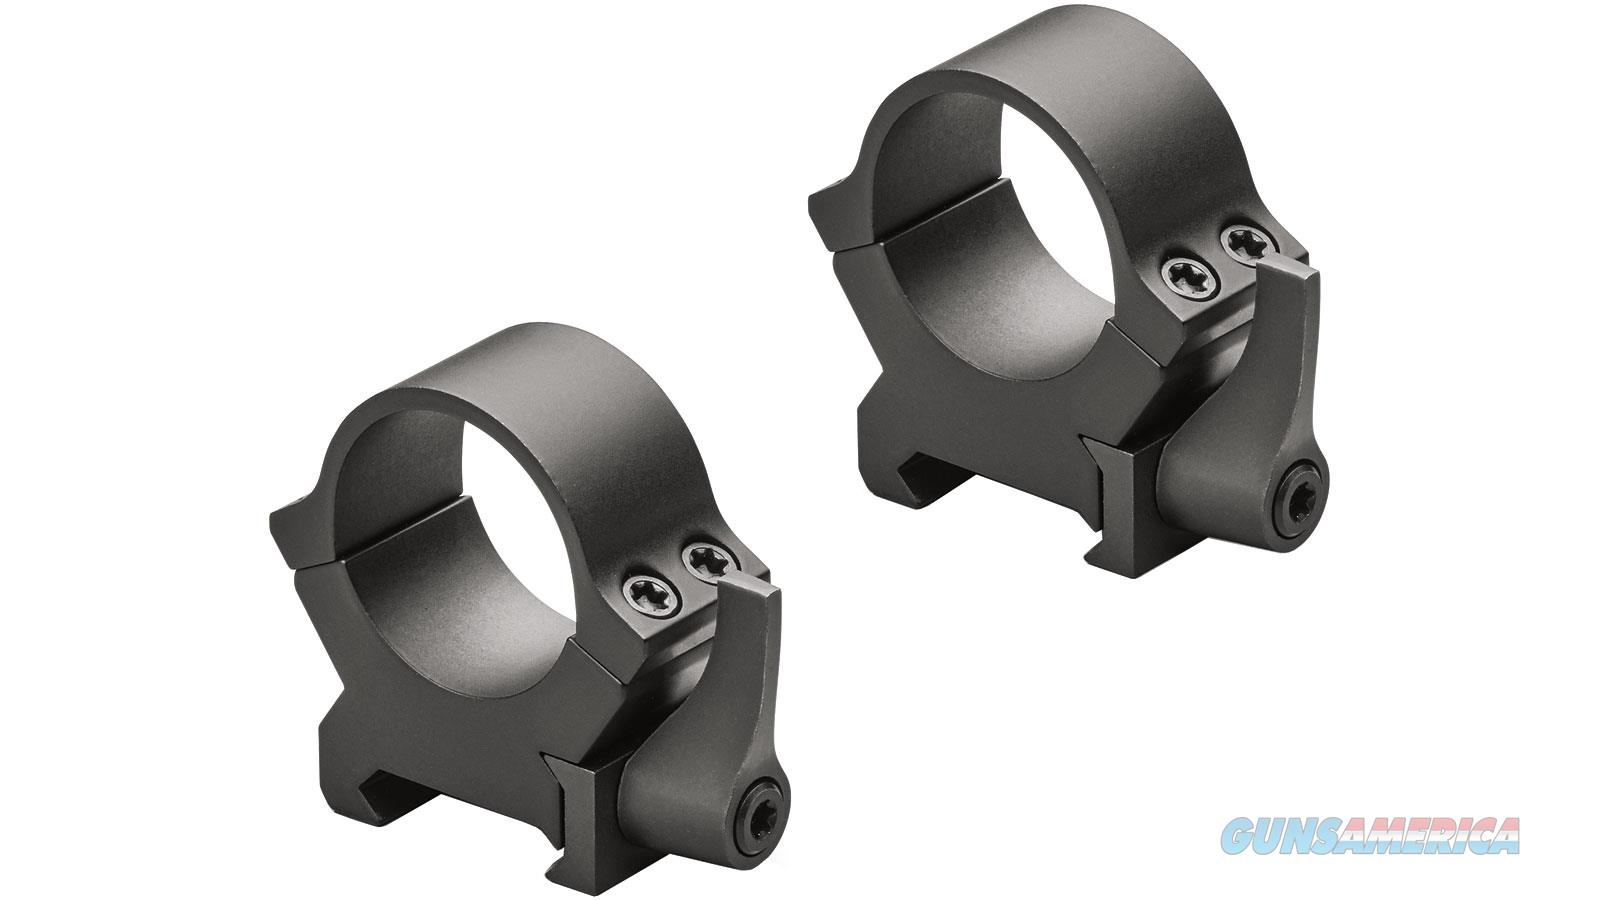 Leupold Leup Qrw2 30Mm Rings Low Matte 174074  Non-Guns > Scopes/Mounts/Rings & Optics > Mounts > Other